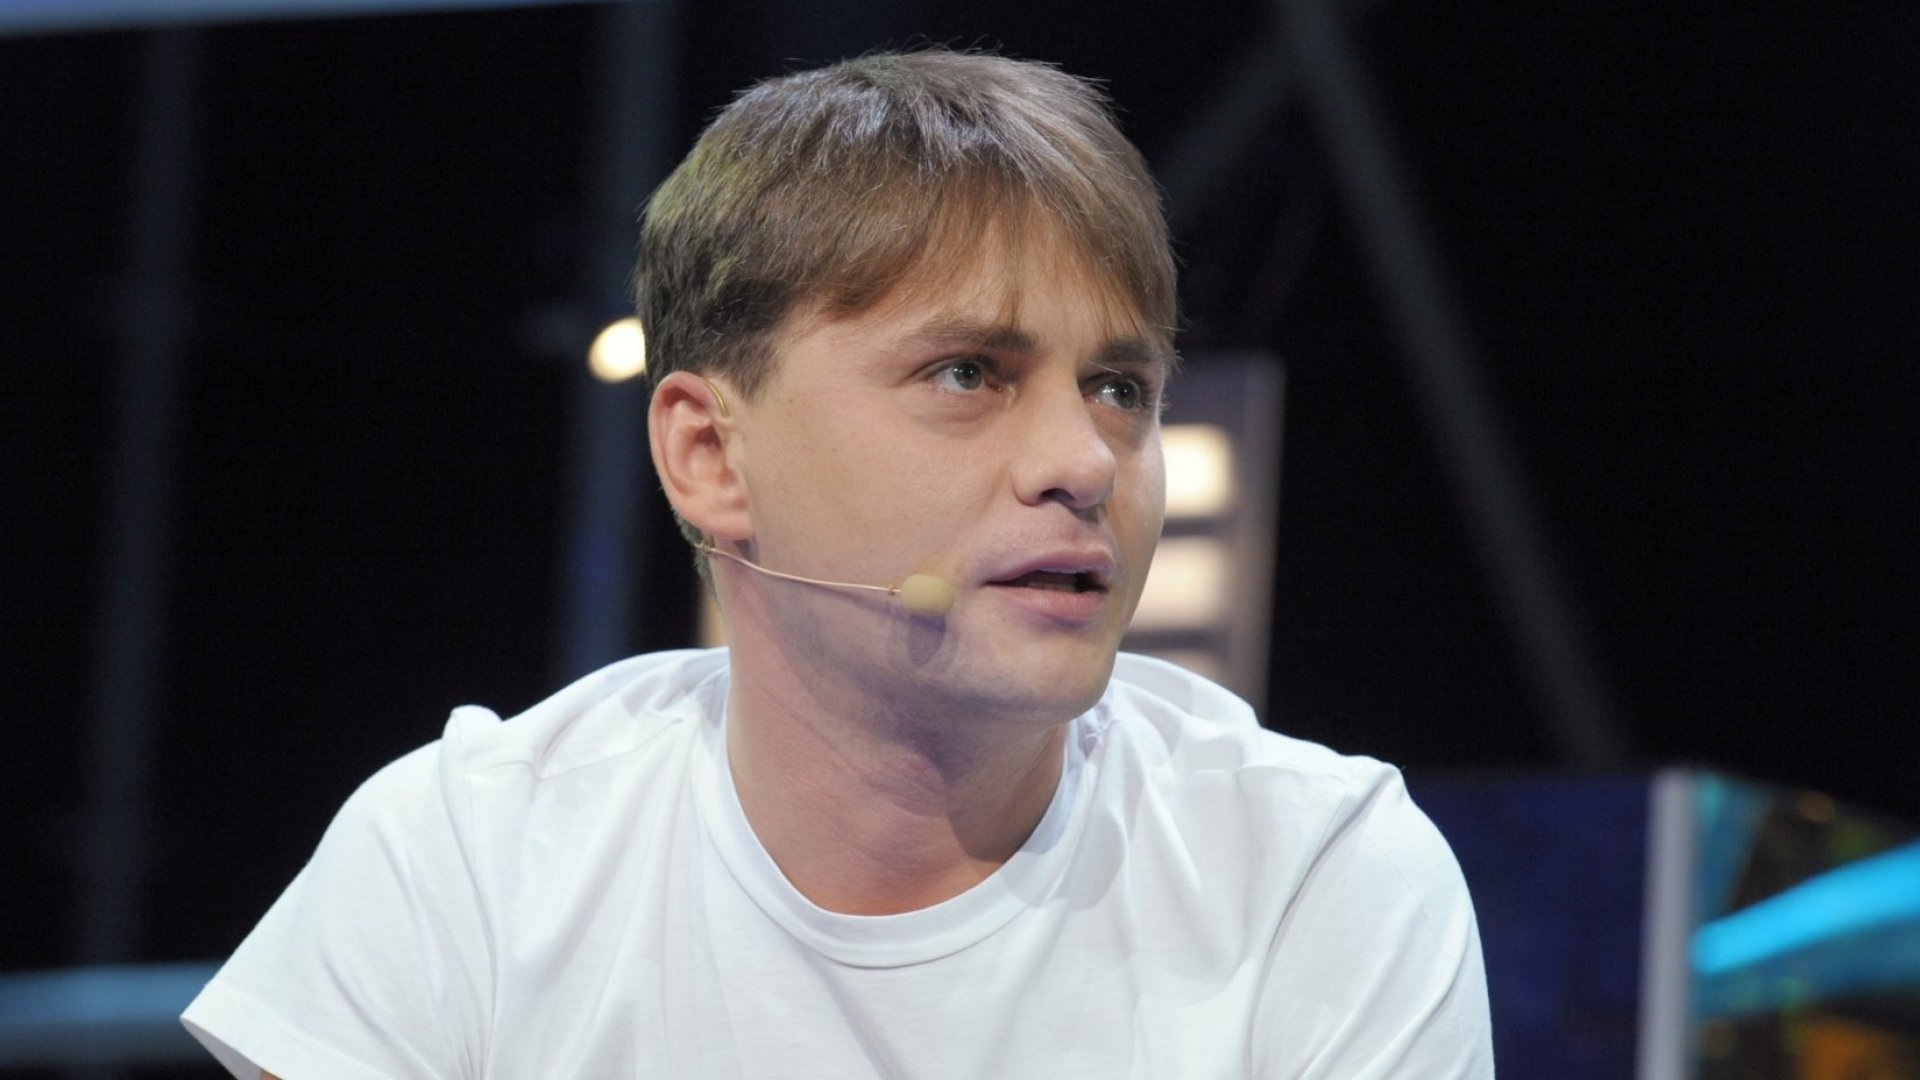 Andrey Andreev, founder and CEO of Badoo, is also a founding partner and majority stakeholder in Bumble.